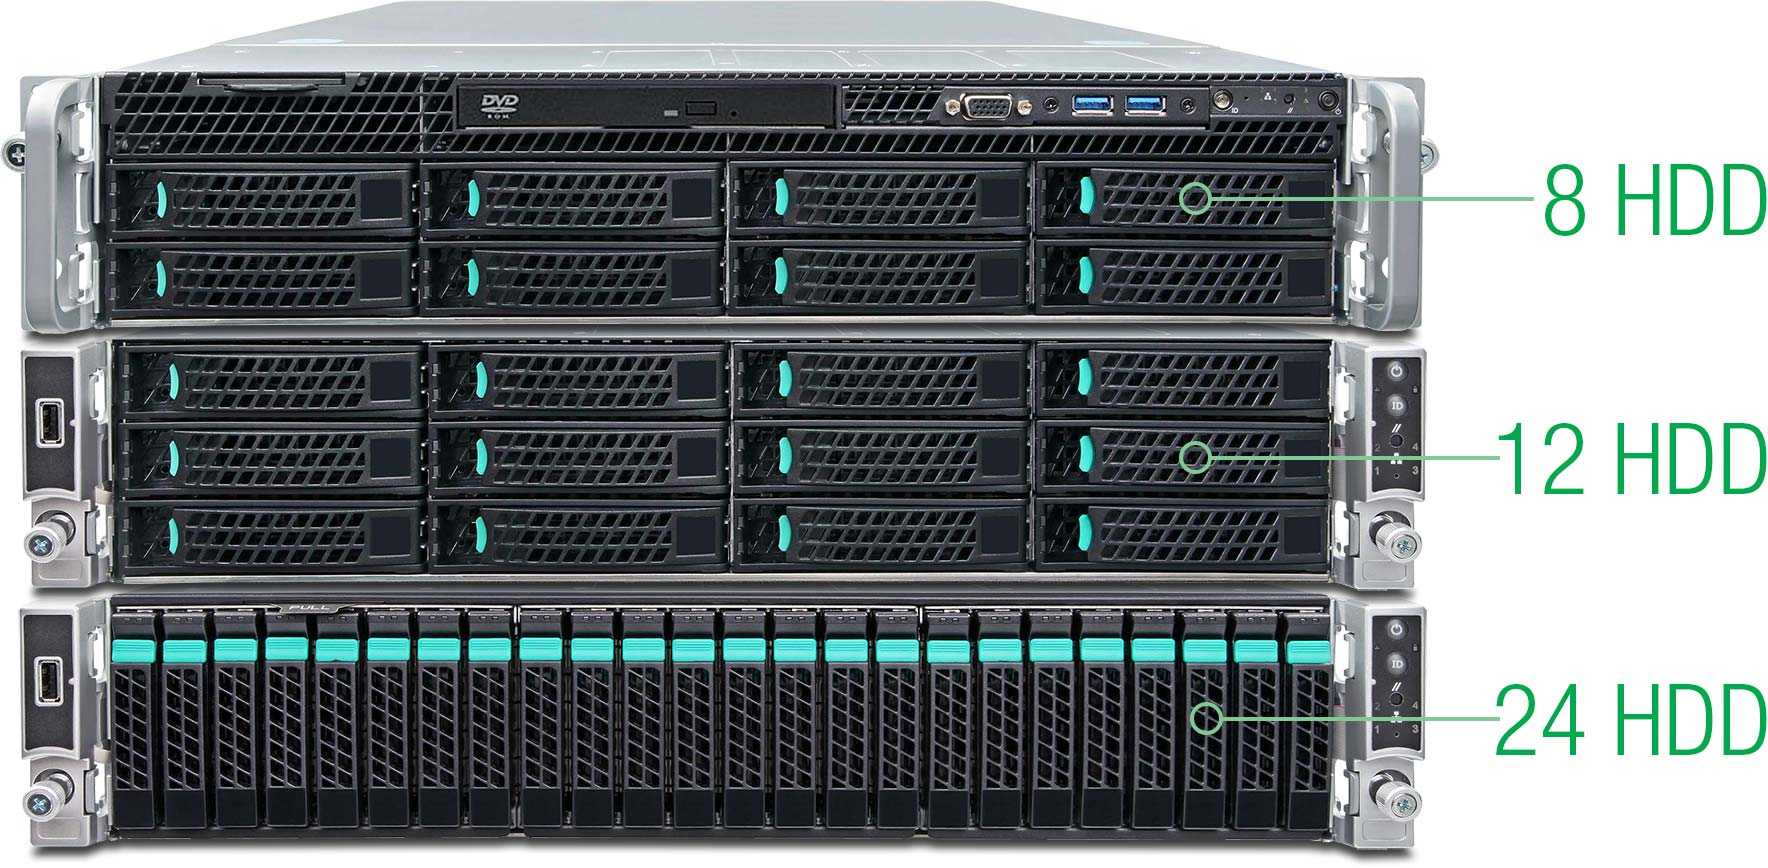 E-2900 R4 – Enterprise communications server